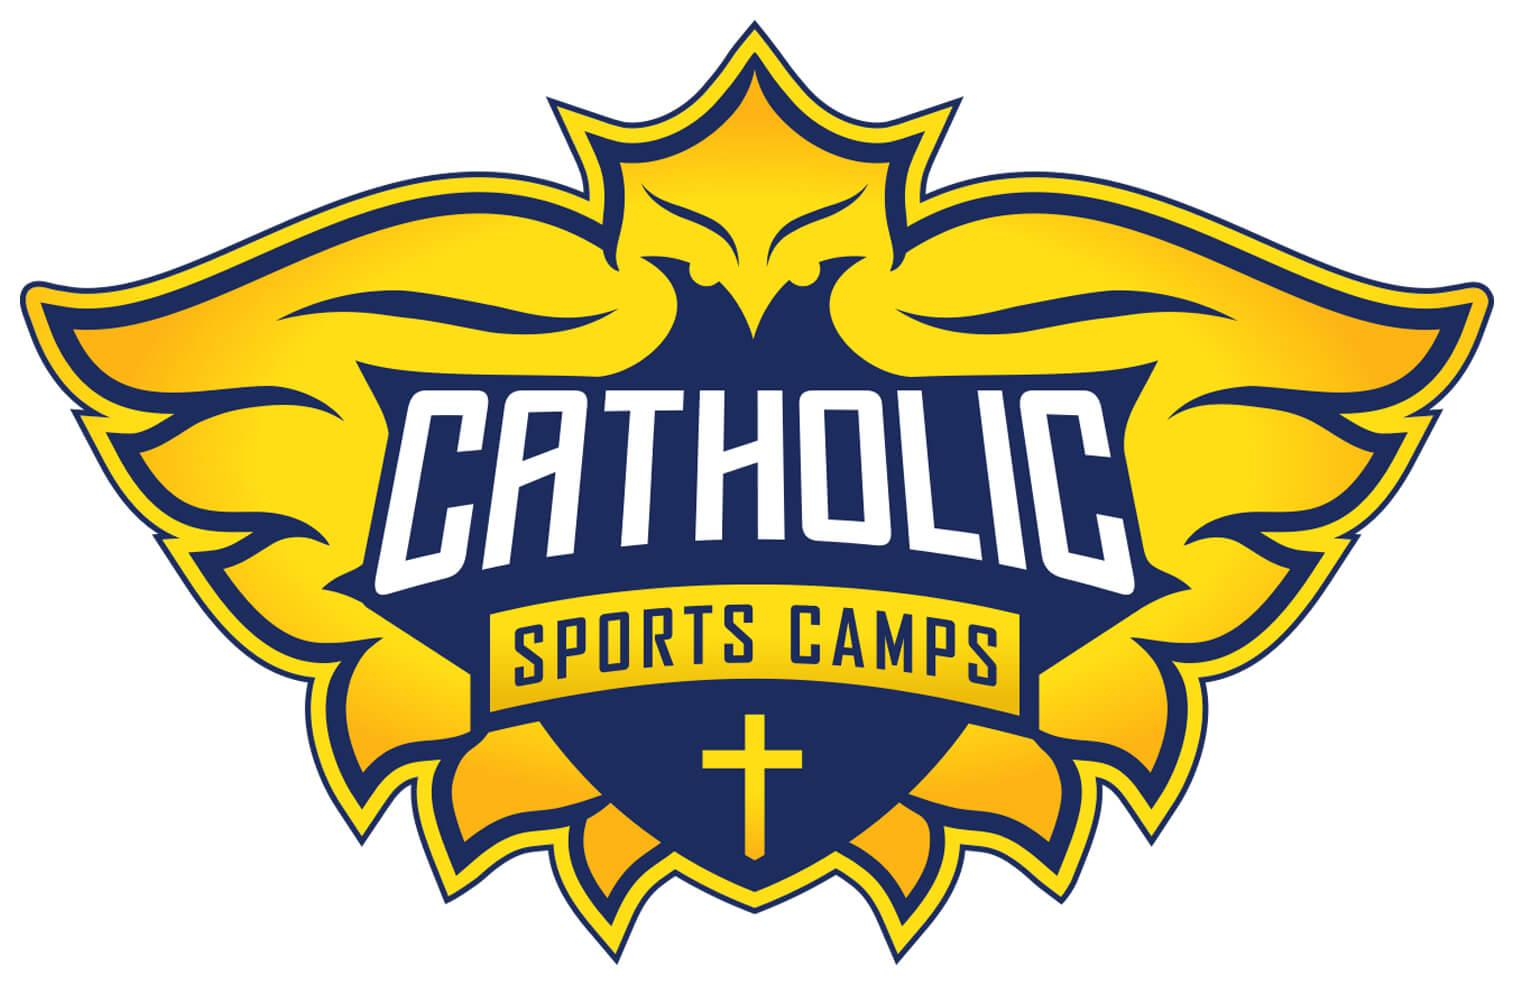 Logo for Catholic Sports Camps